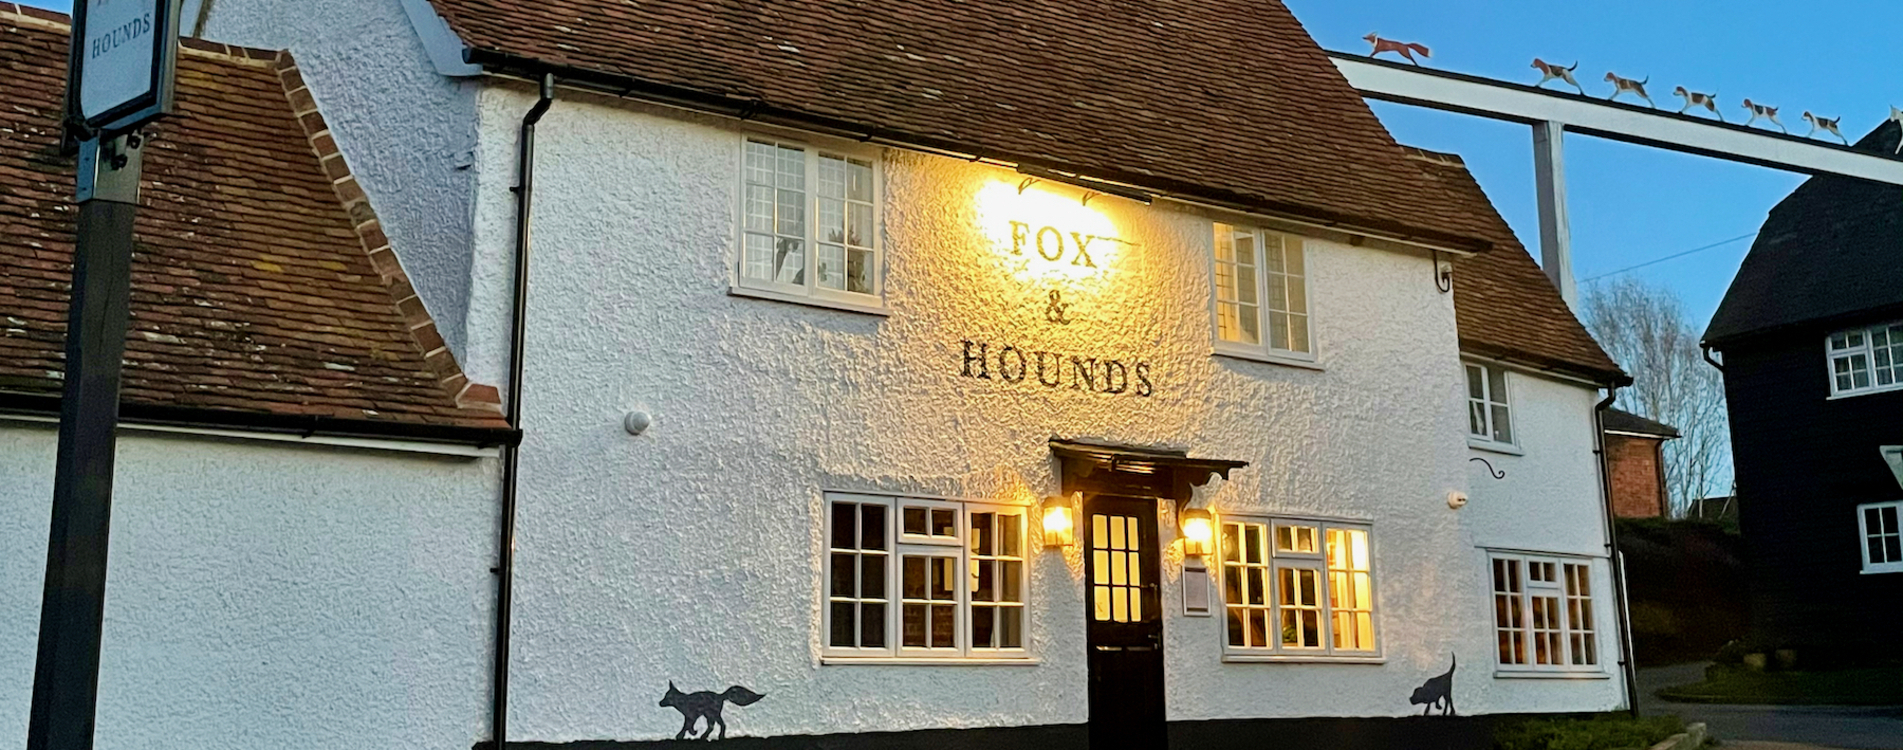 fox-and-hounds-pub (cropped)